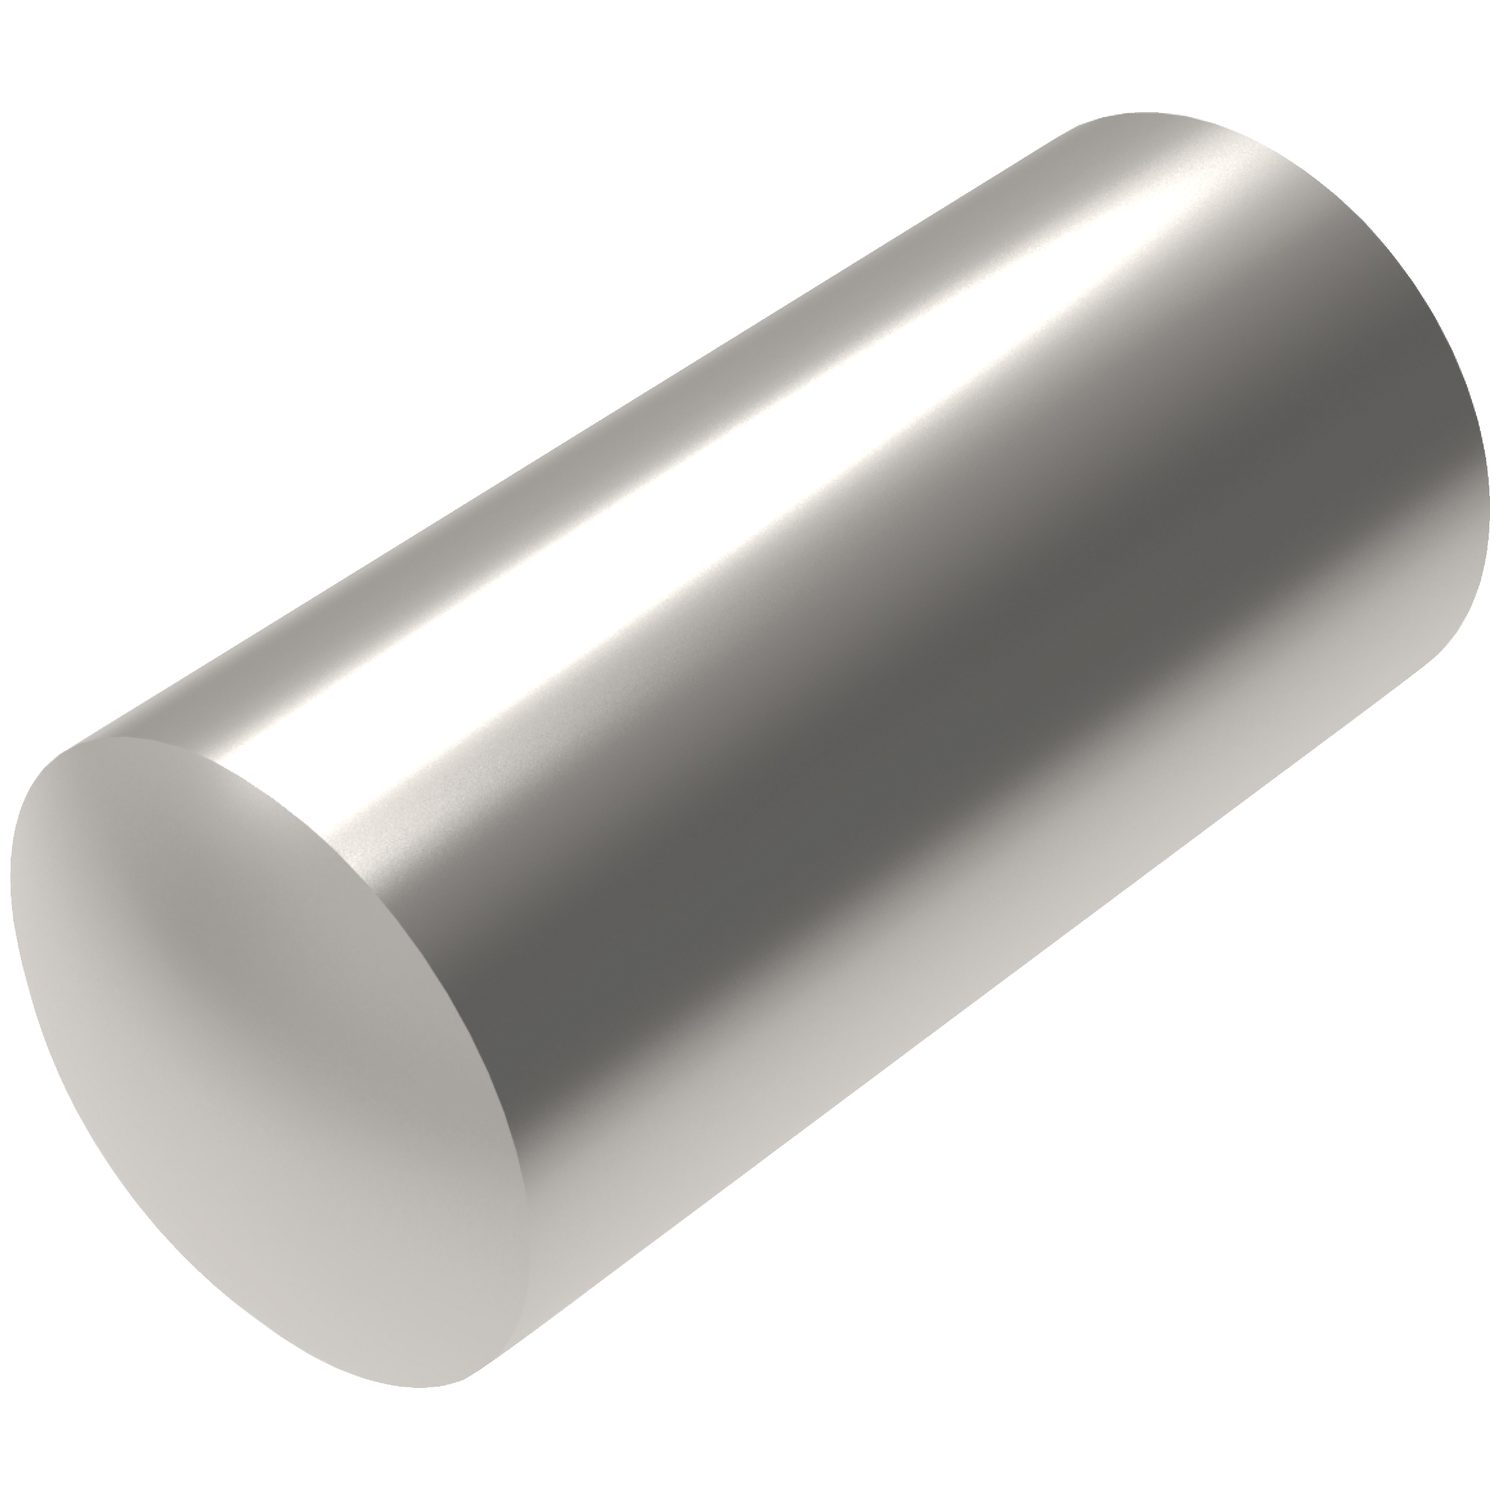 Stainless Dowel Pins A2 stainless A2 stainless steel dowel pins manufactured to ISO 2338A. A2 is a harder material than the A4 but less resistant to corrosion.